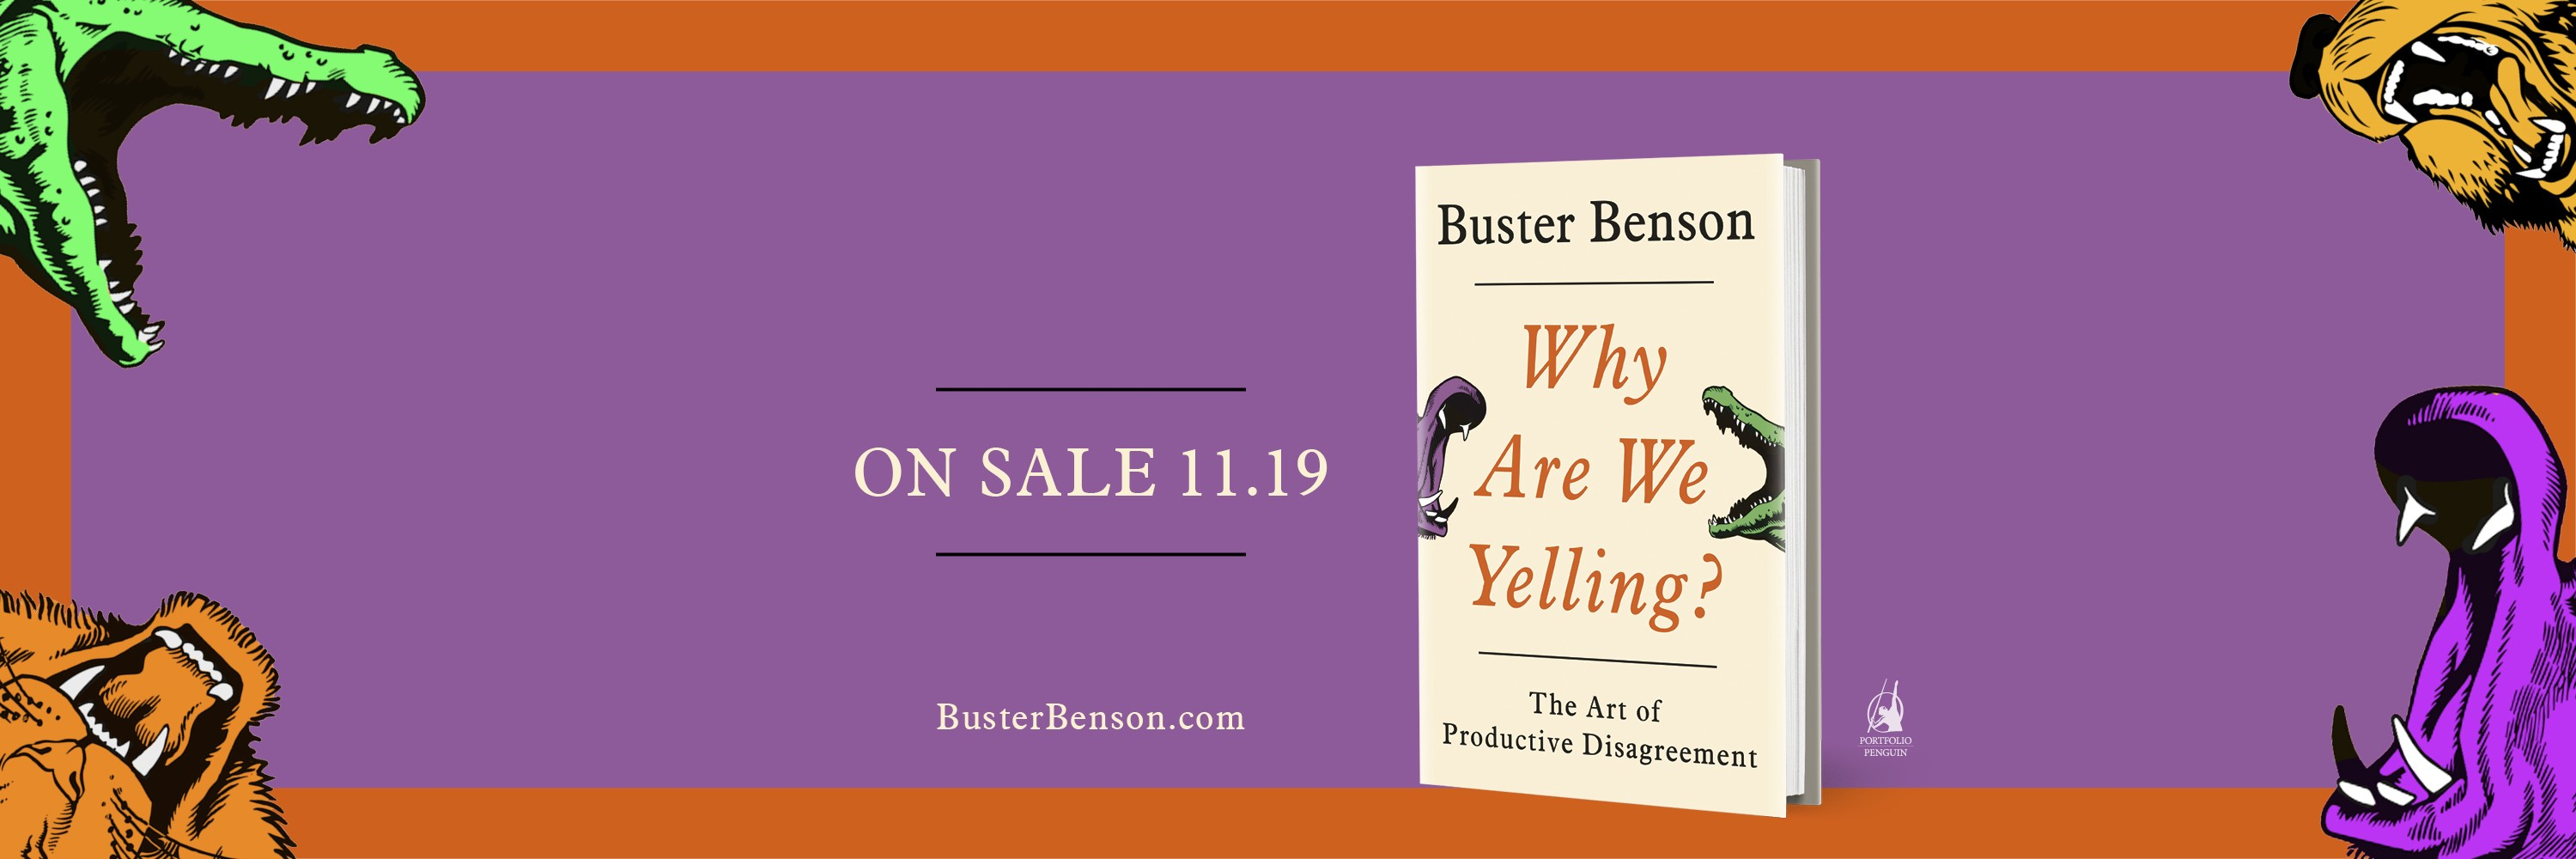 Why Are We Yelling? The Art of Productive Disagreement. On sale 11/19/2019.